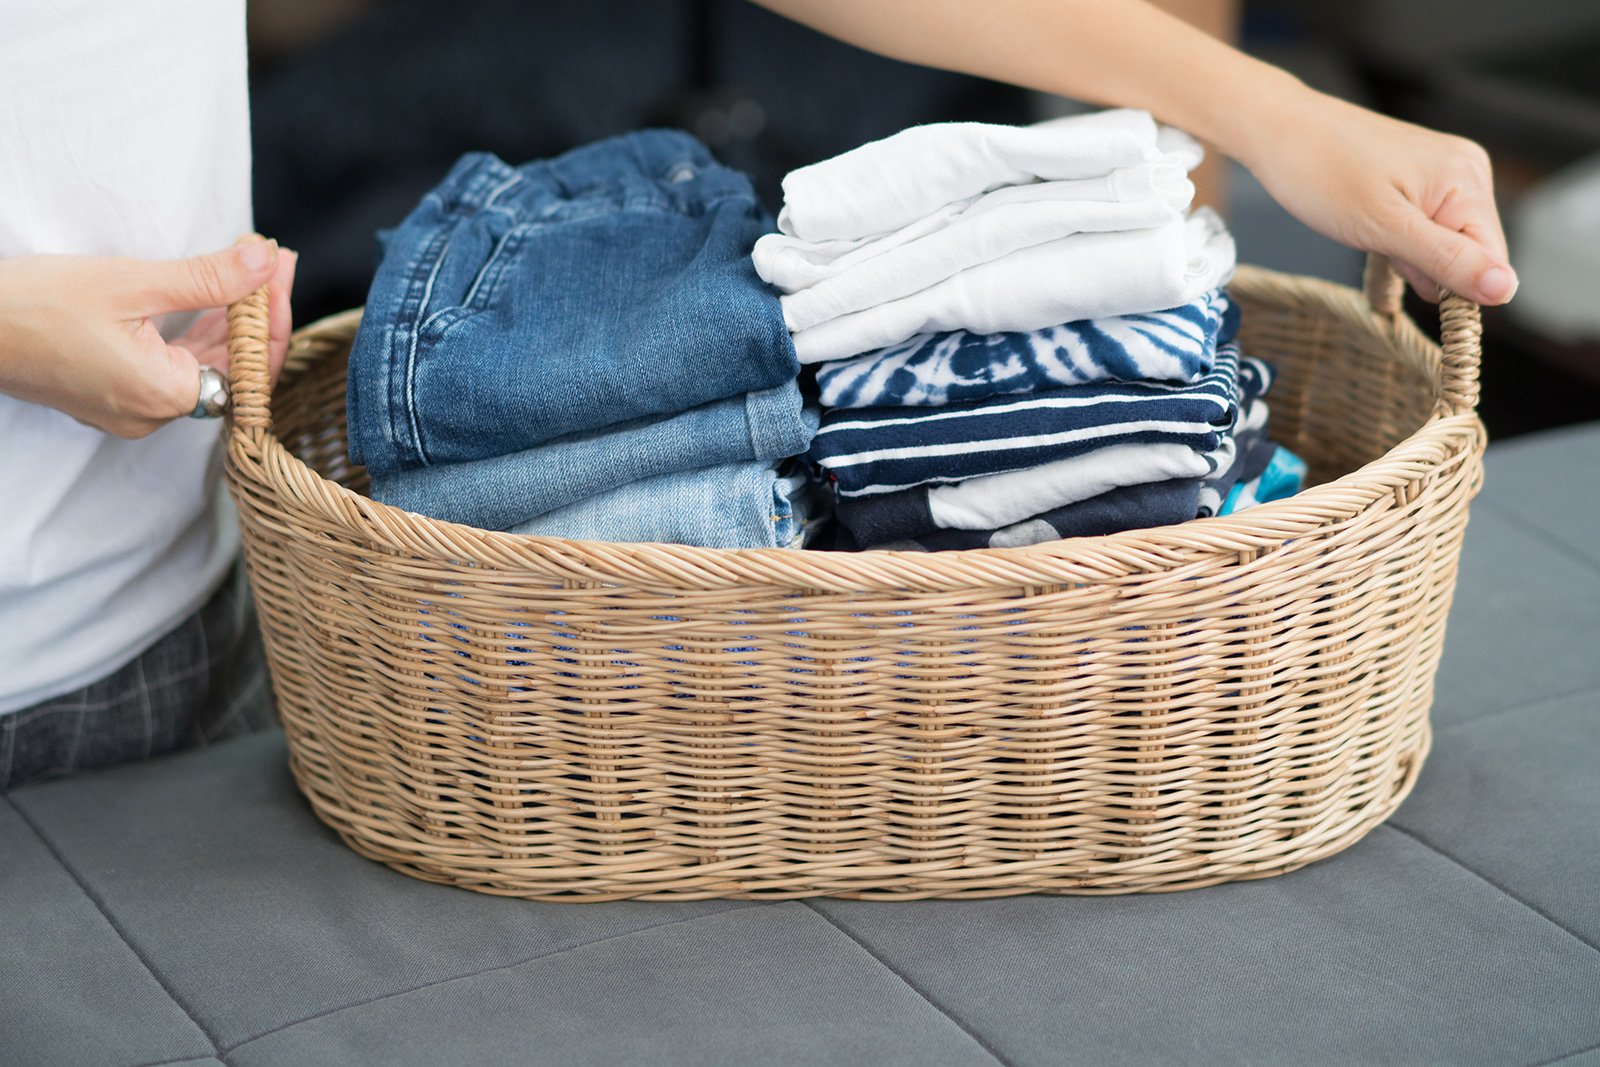 Person holding handles of straw laundry basket with neatly stacked clothes inside